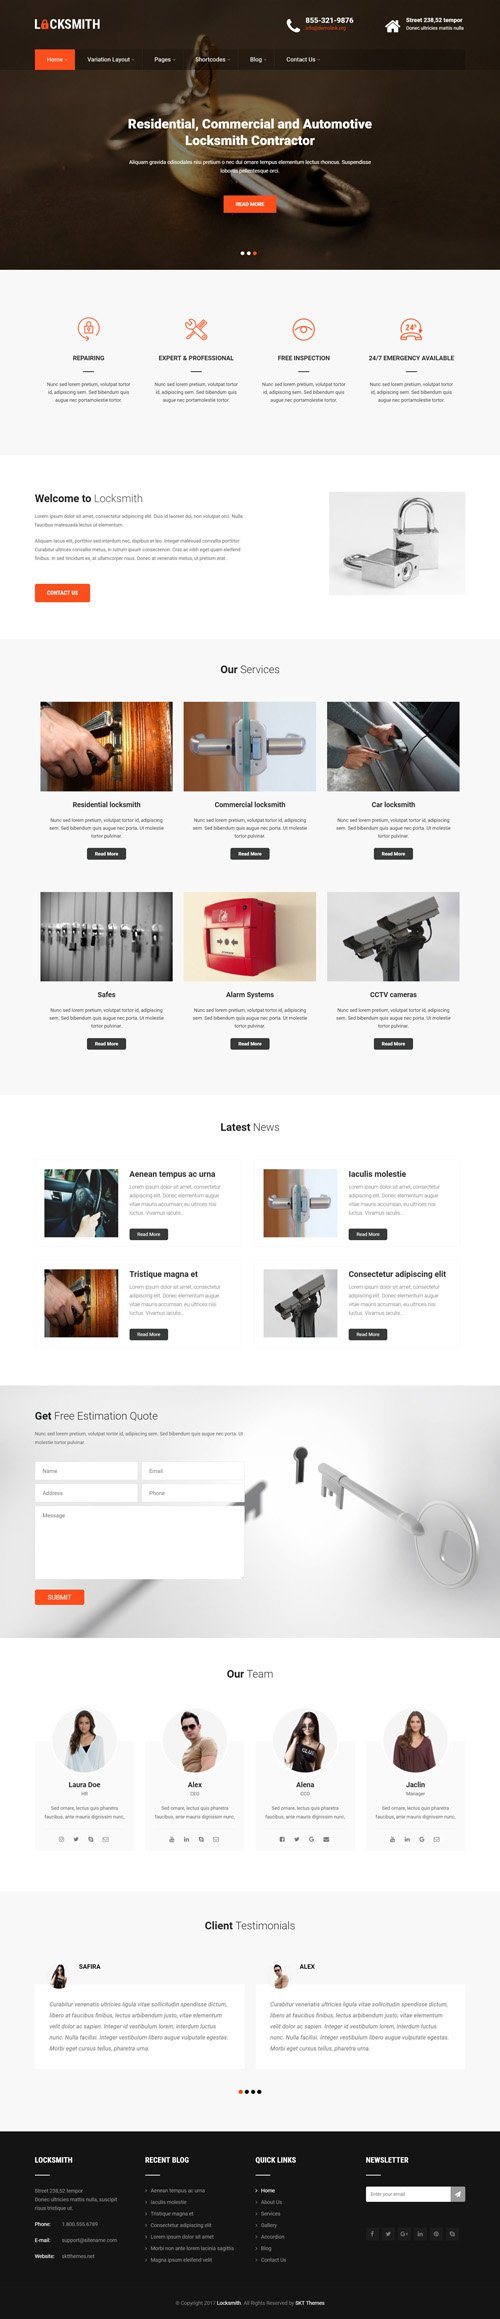 SKT Themes - Locksmith v1.0 - Responsive WordPress Theme